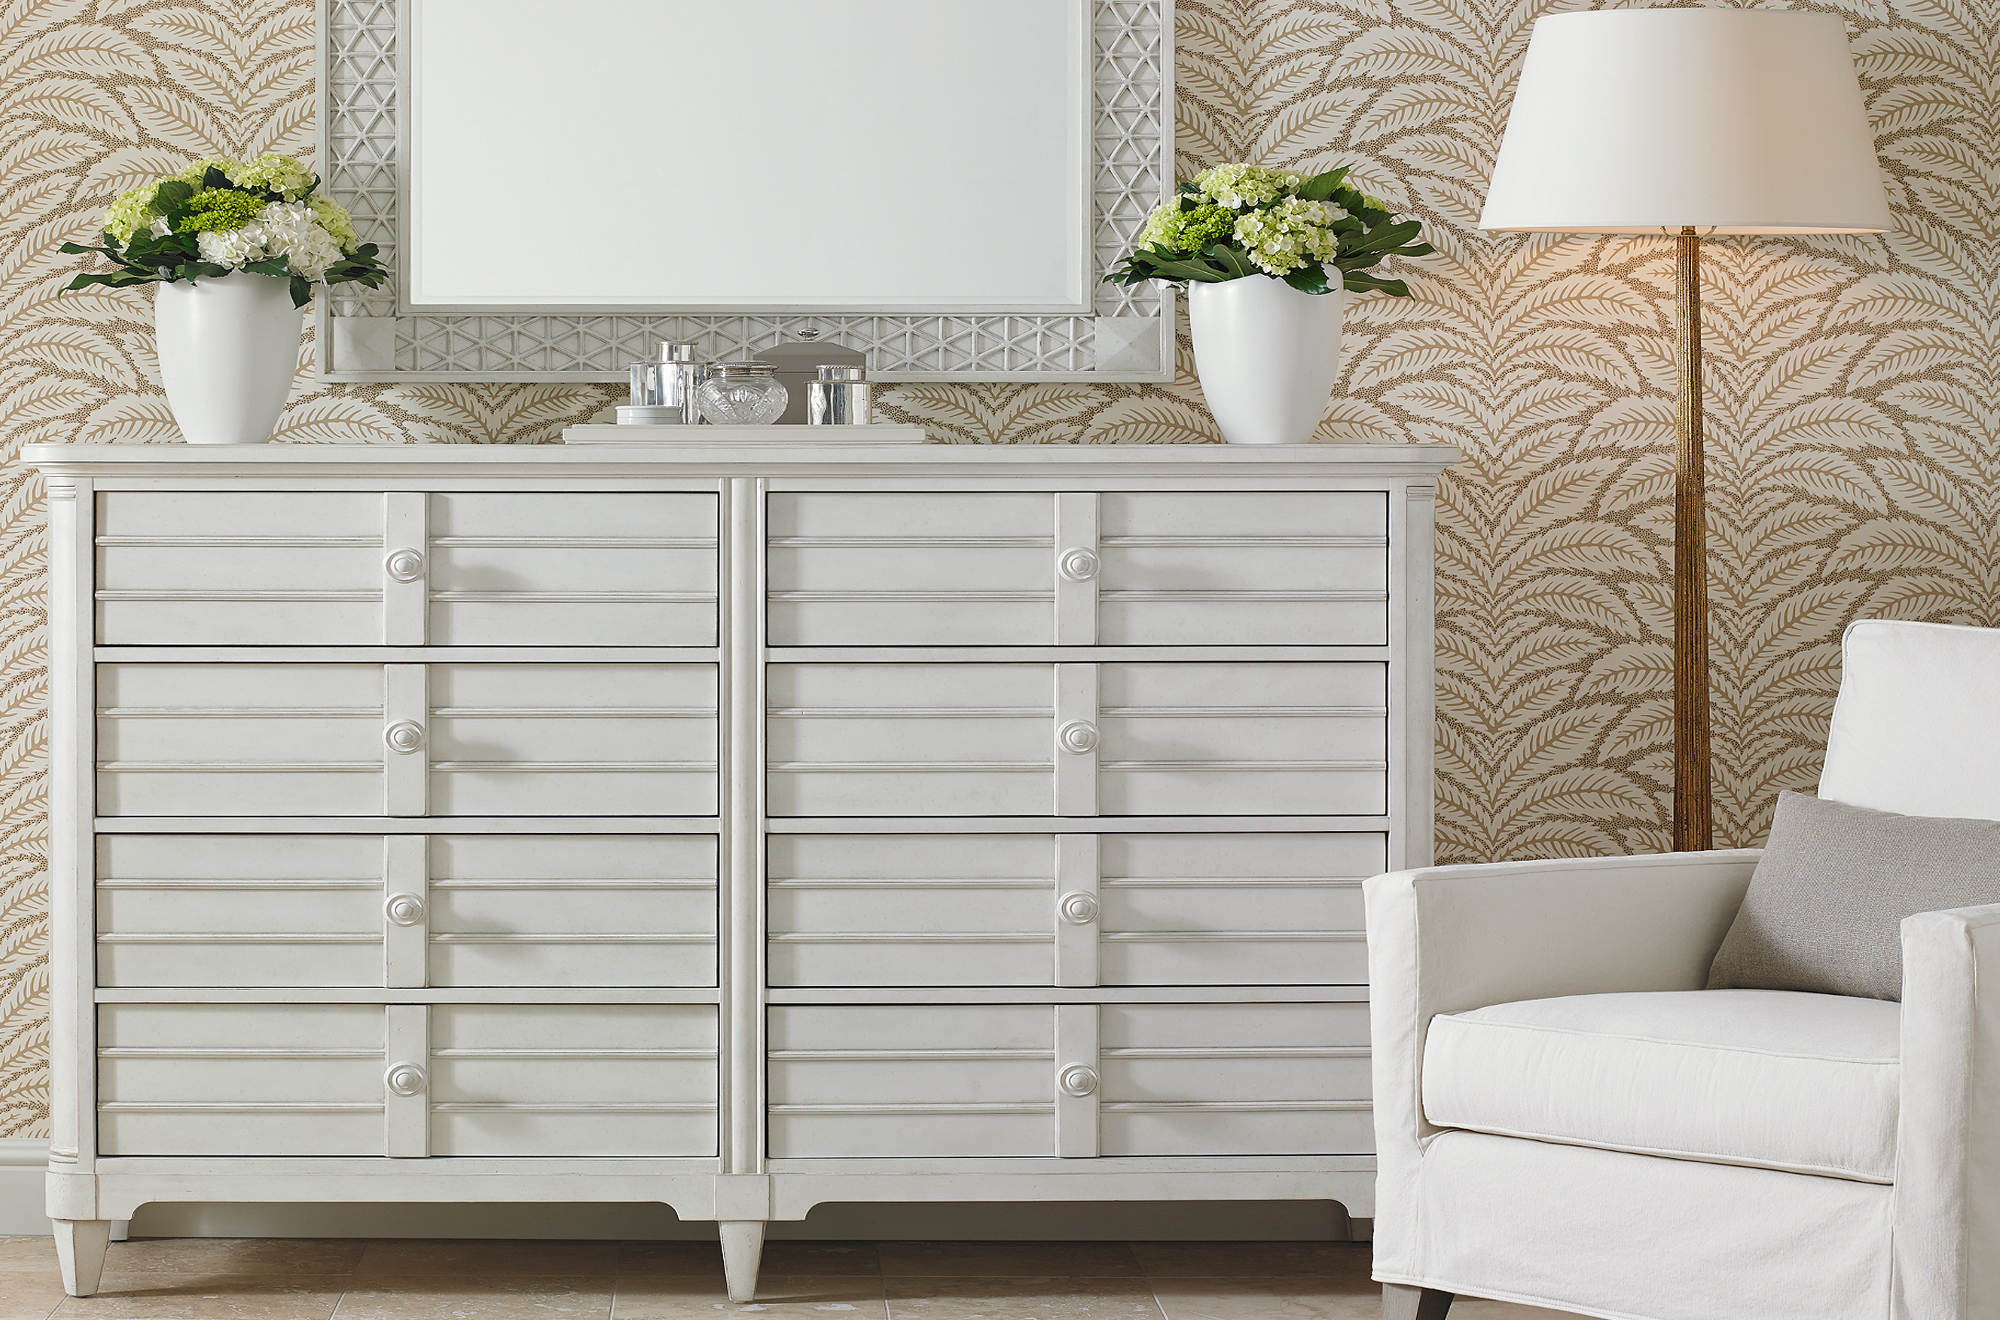 Cypress Grove Dresser with mirror